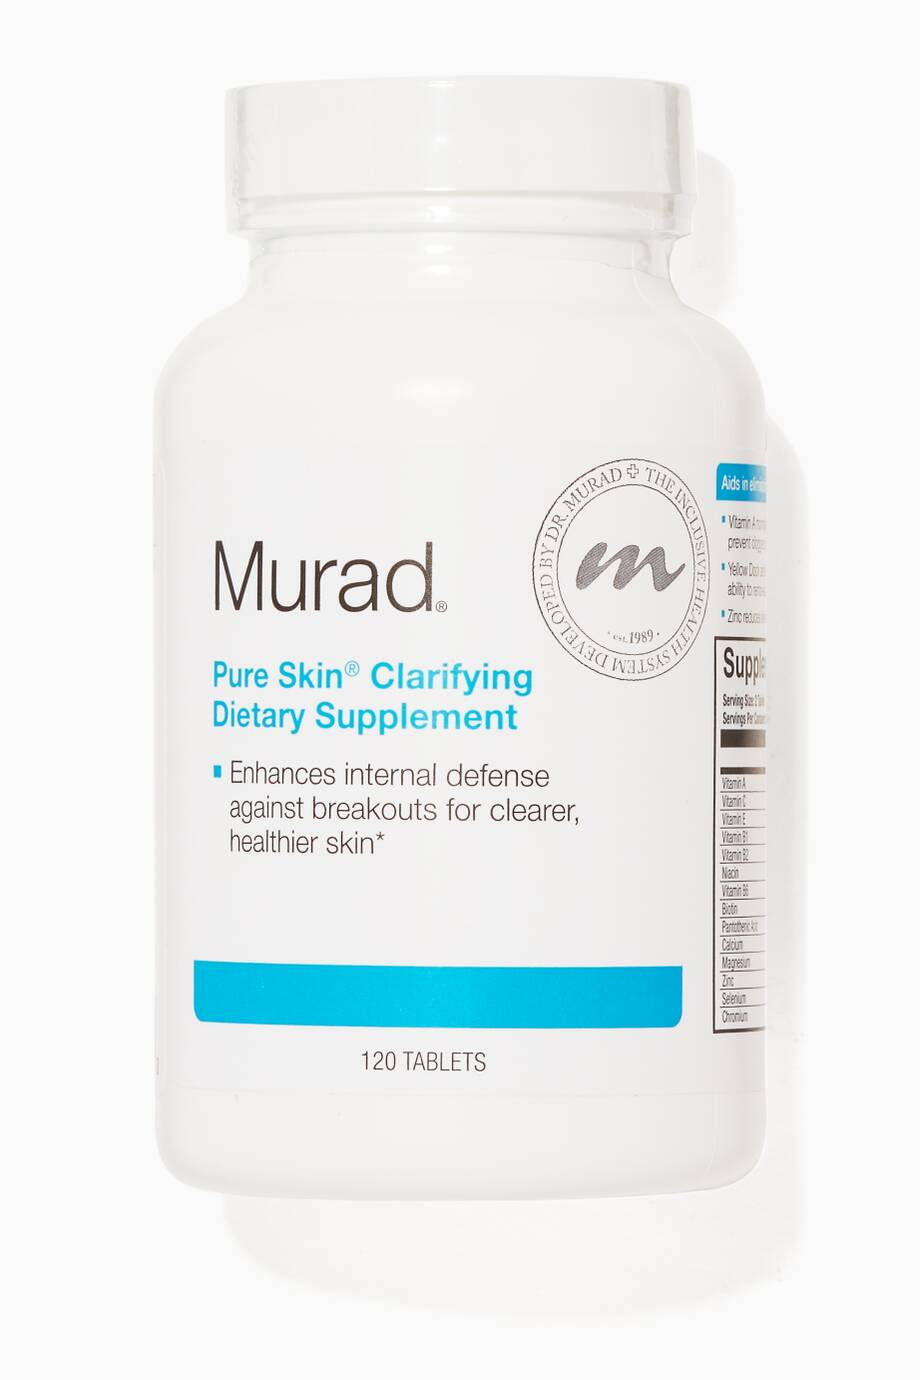 Insta Supplement Magazine: Shop Luxury Murad Pure Skin Clarifying Dietary Supplement